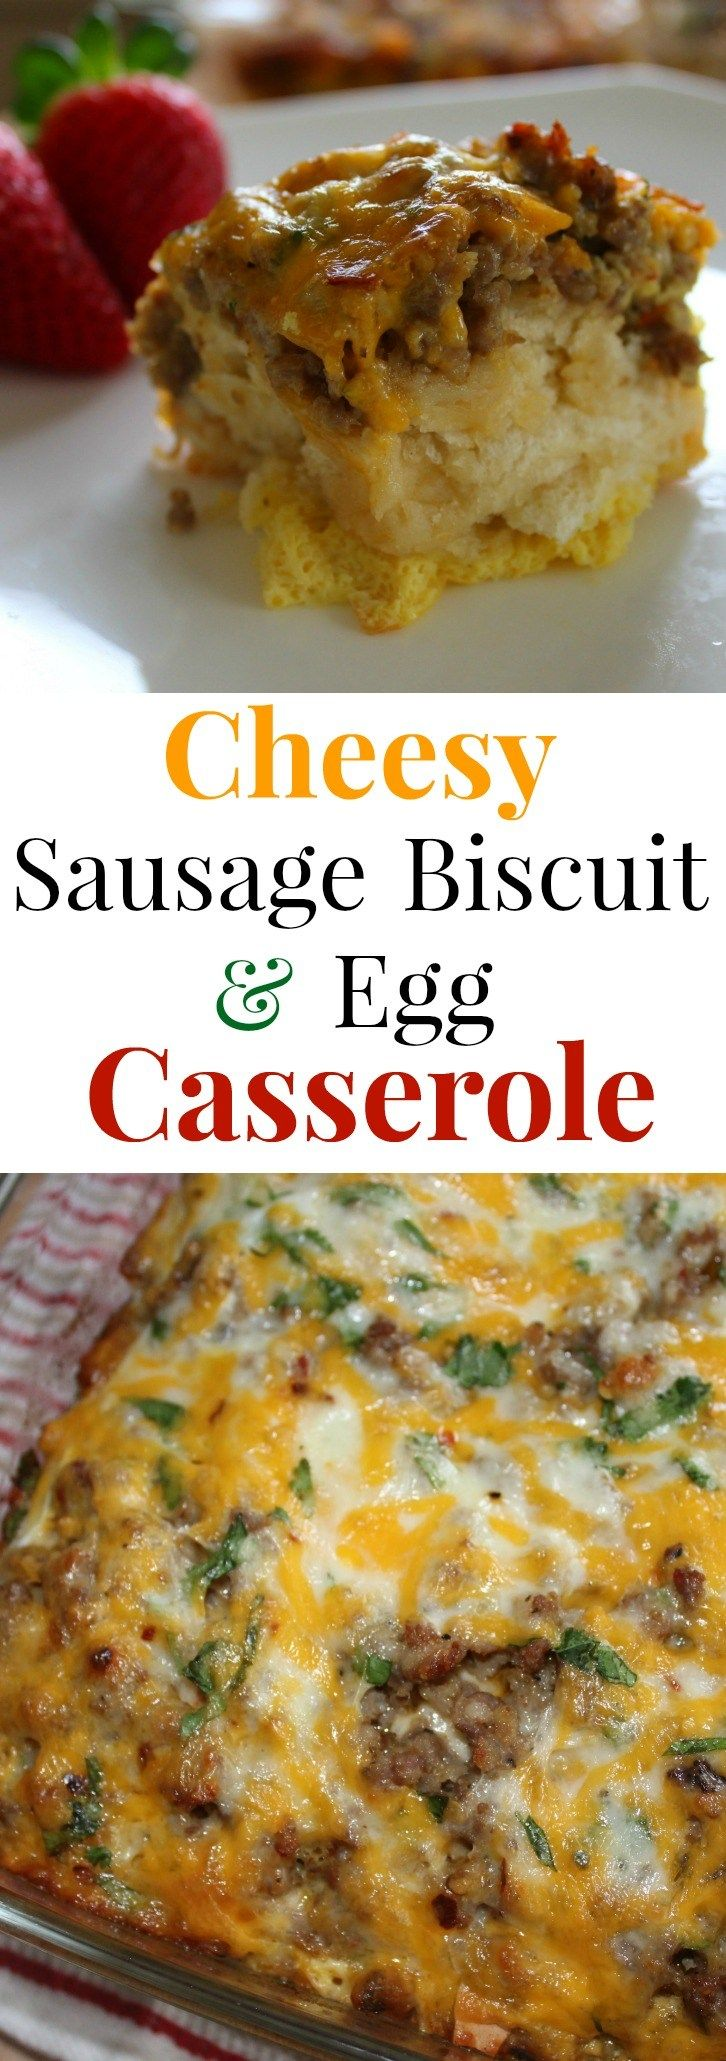 This hearty Sausage Biscuit and Egg Breakfast Casserole is a perfect morning or brunch recipe to feed a hungry family. This easy egg bake can be made the night before or put together in 10 minutes.